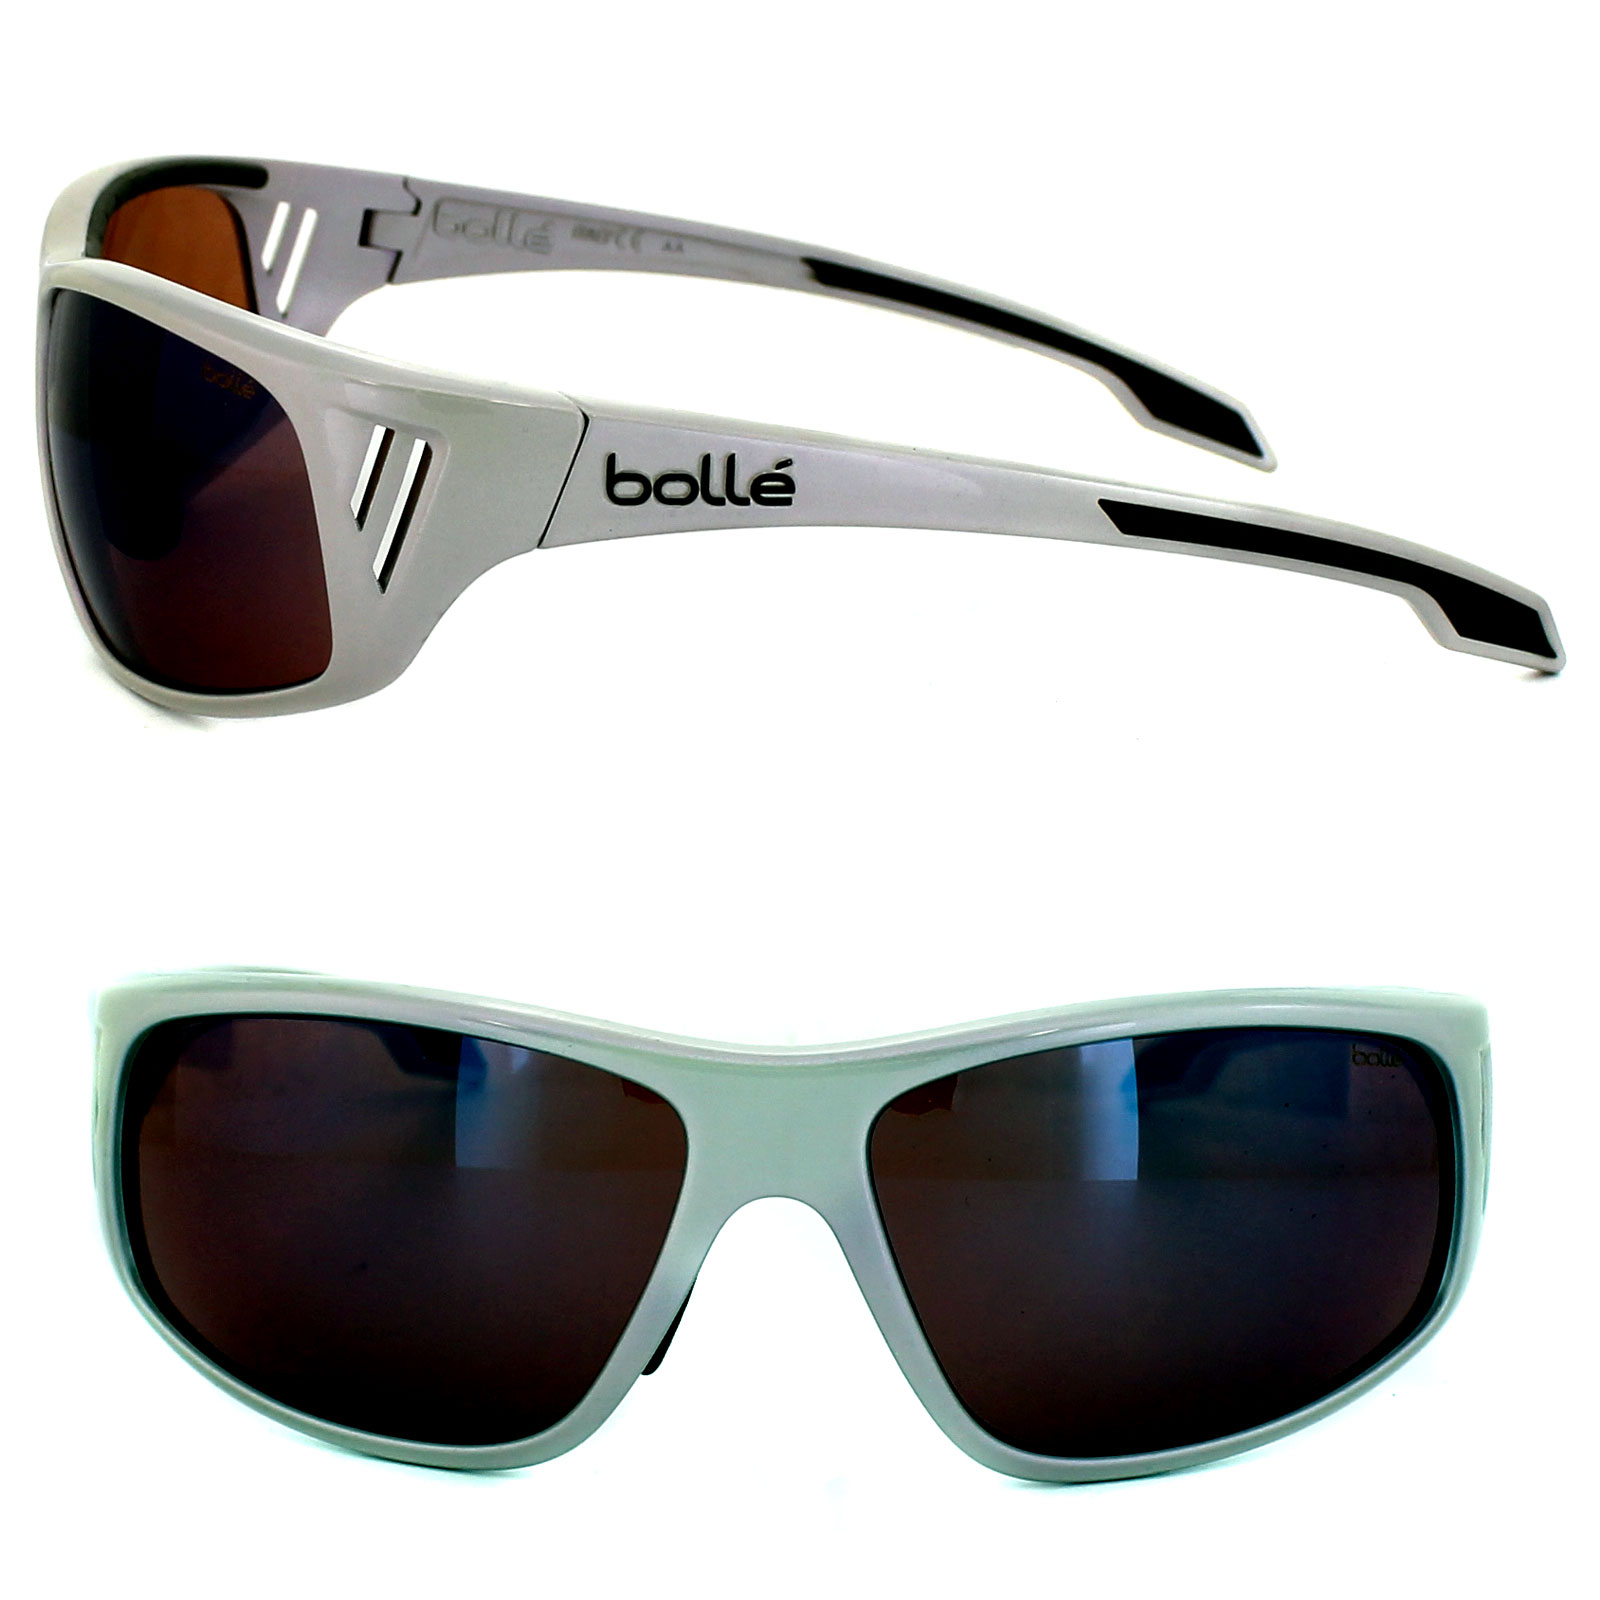 Holographic Details Mirror About Rainier Sunglasses Silver Bolle Rose Blue 11551 kZPiuOX